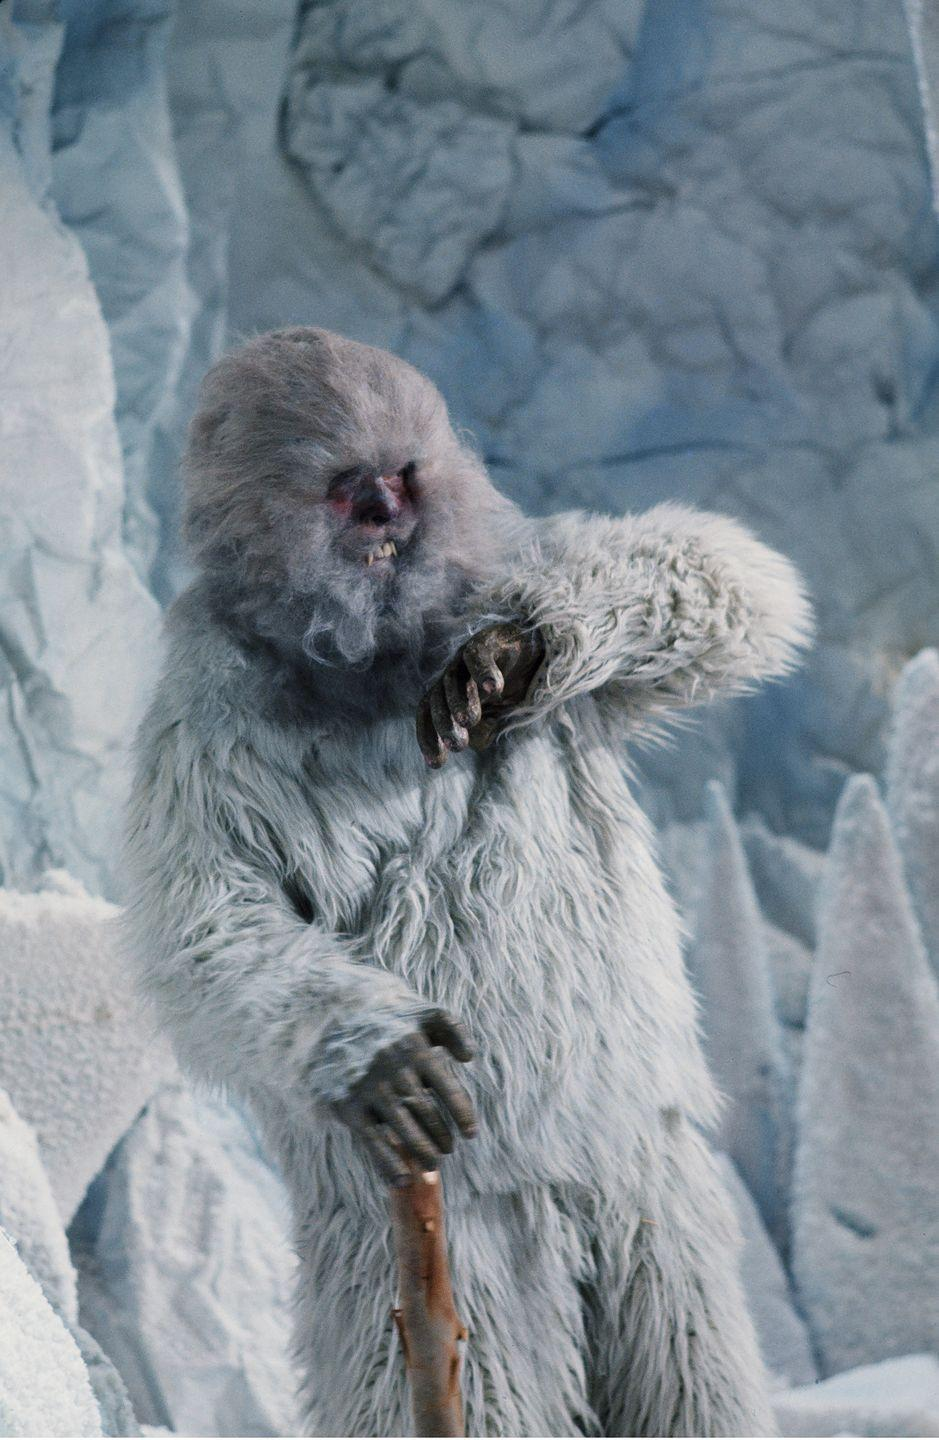 <p>Much like Bigfoot, the Abominable Snowman has long been a mythological creature that the public has tried to find for thousands of years. The lure of the conspiracy? Large foot tracks found in the snow of a two-legged, human-like animal. </p>